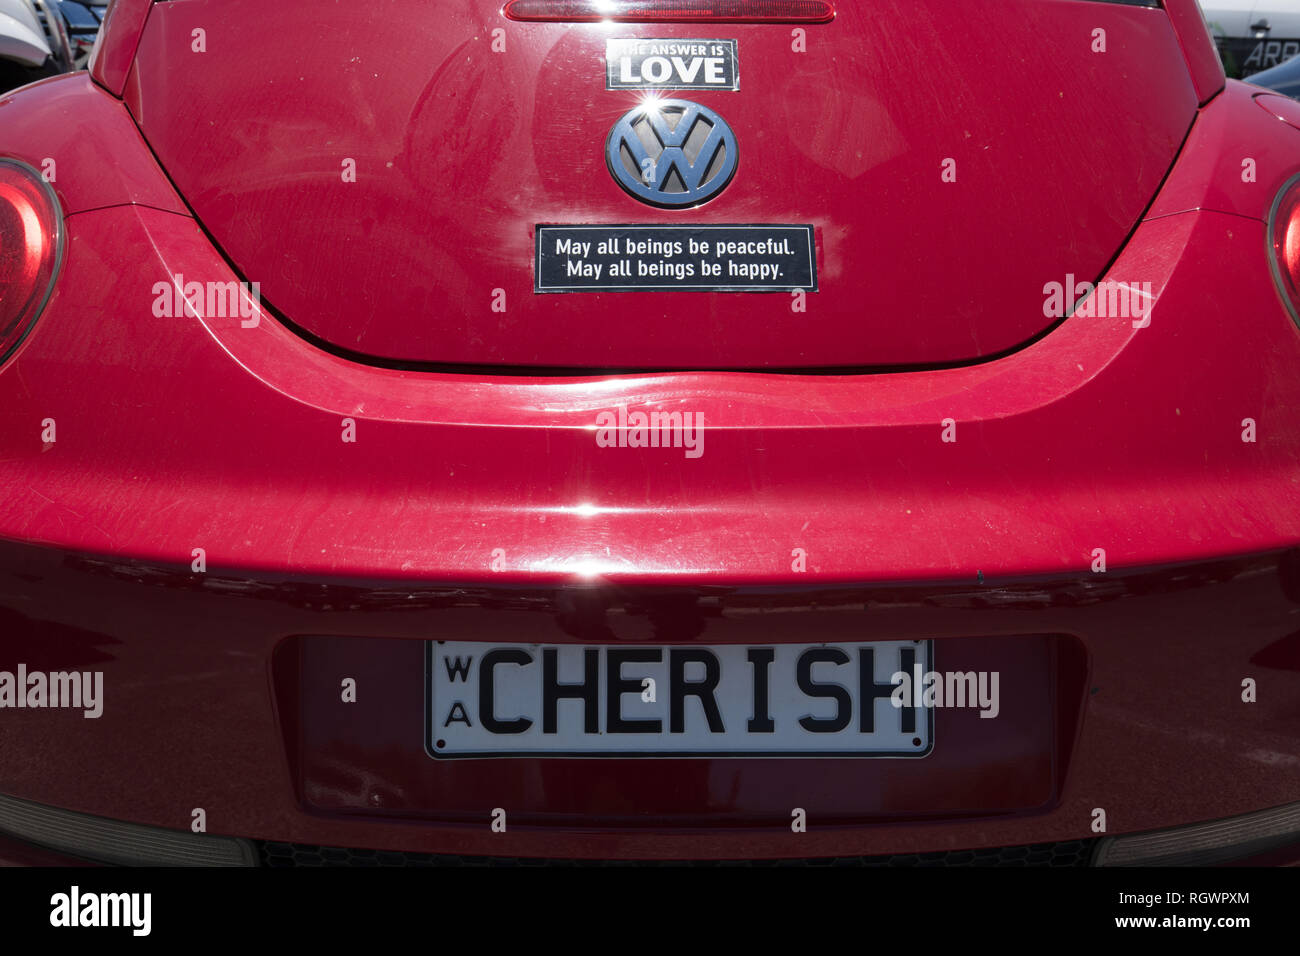 Private Number Plate ' cherish ' and sign stickers of love, peace and happiness on a red Volkswagen Beetle, parked in Whitfords Beach, Perth, Western - Stock Image